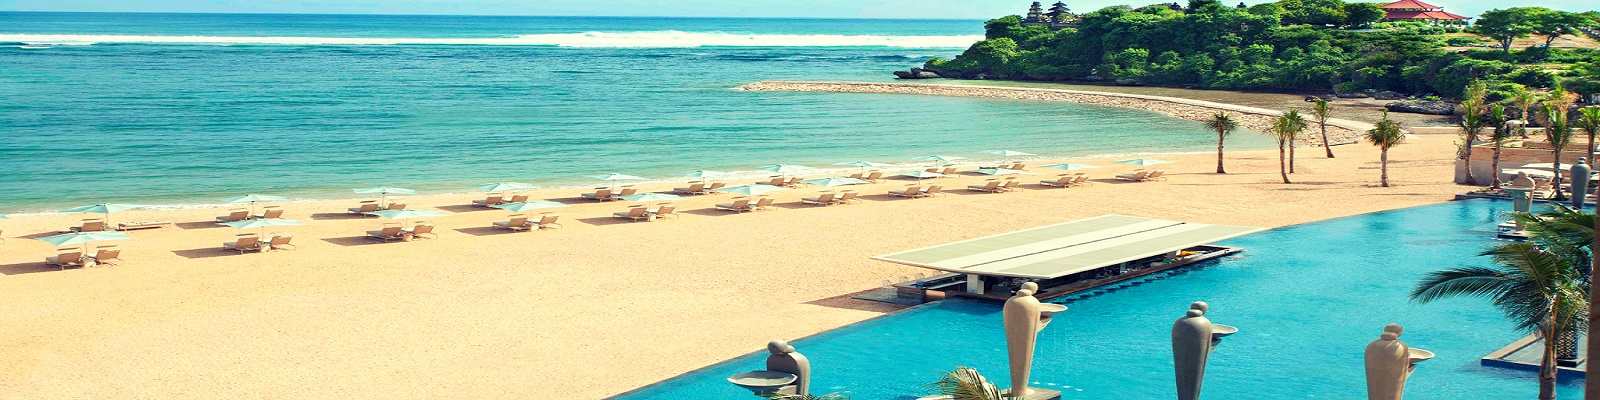 Bali the a Traveller's Paradise